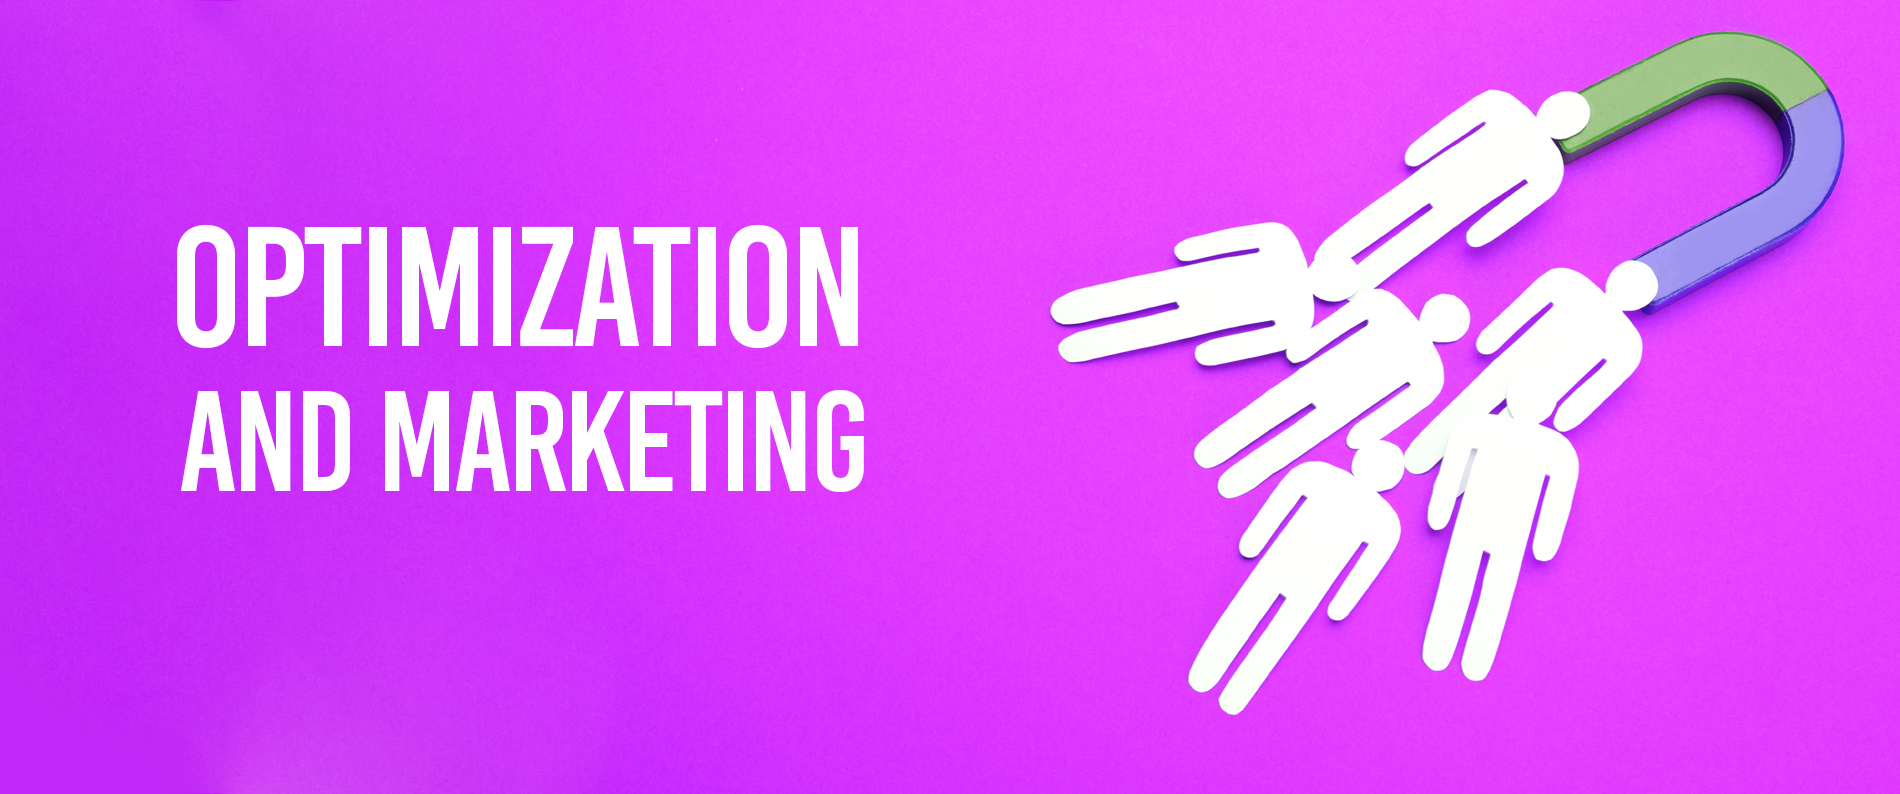 Optimization and Marketing